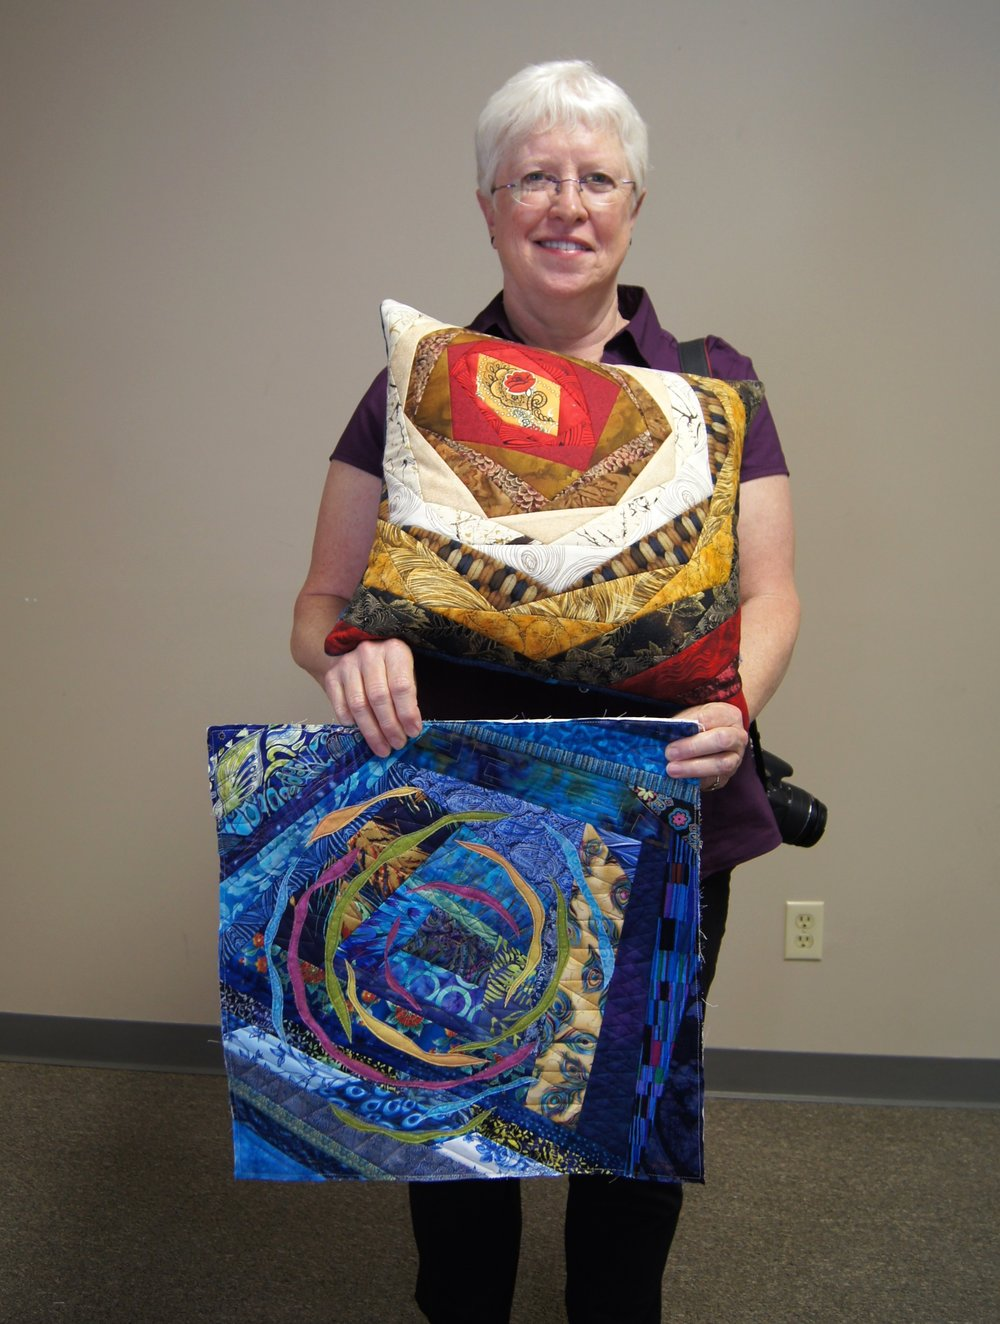 Martha S. made this pillow in a class she teaches; the quilt was inspired by something she saw on Pinterest.